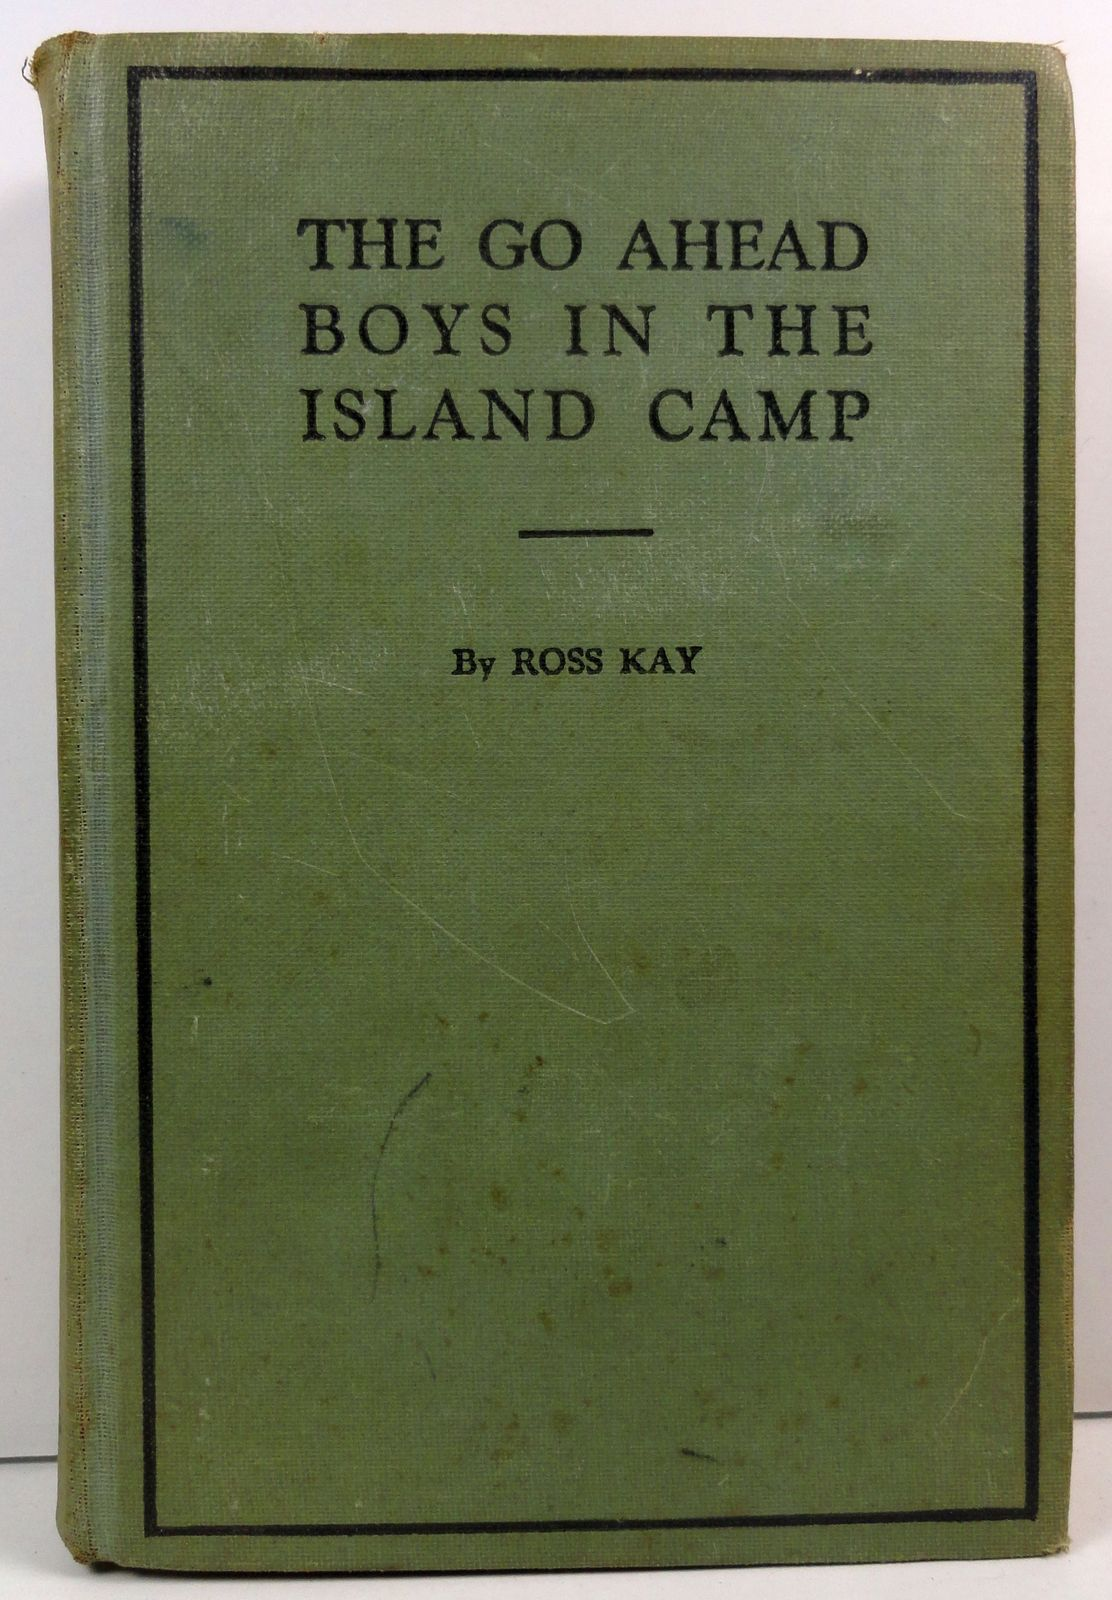 The Go Ahead Boys in the Island Camp by Ross Kay 1916